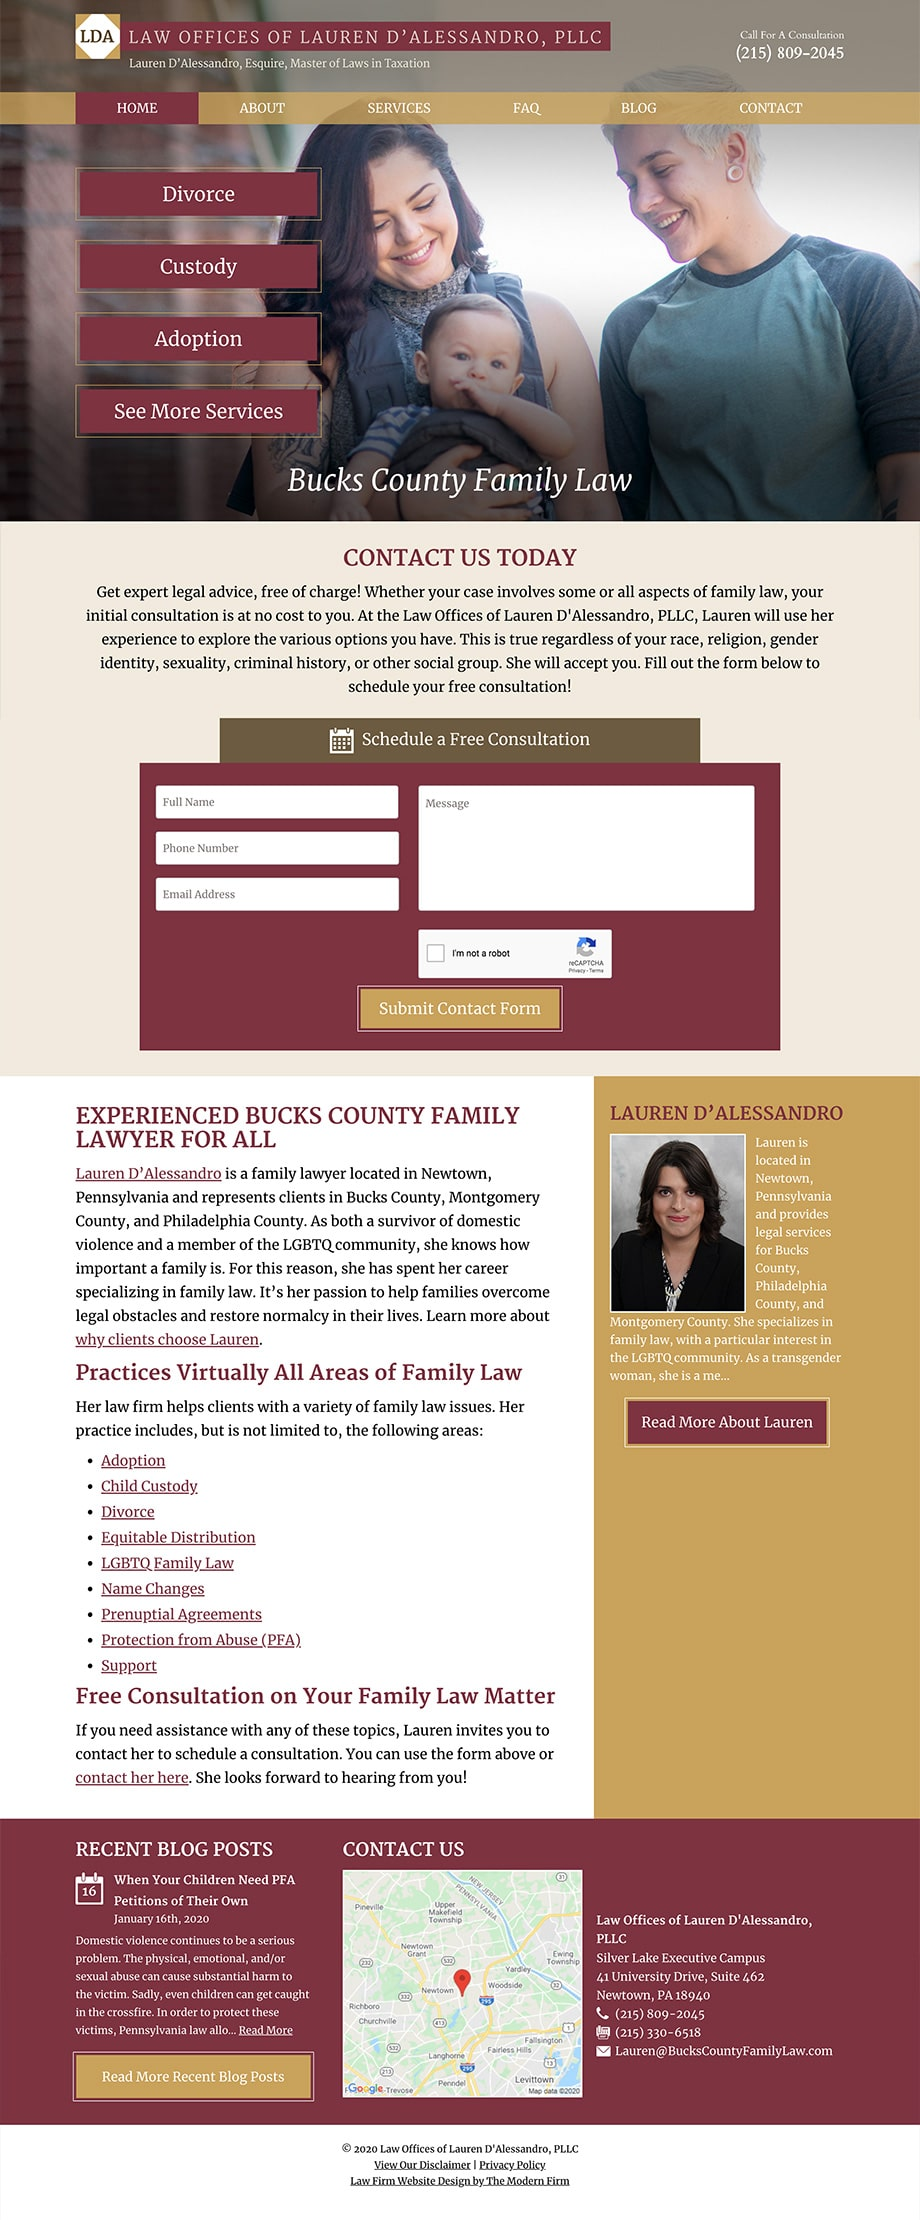 Law Firm Website Design for Law Offices of Lauren D'Alessandro, PLLC